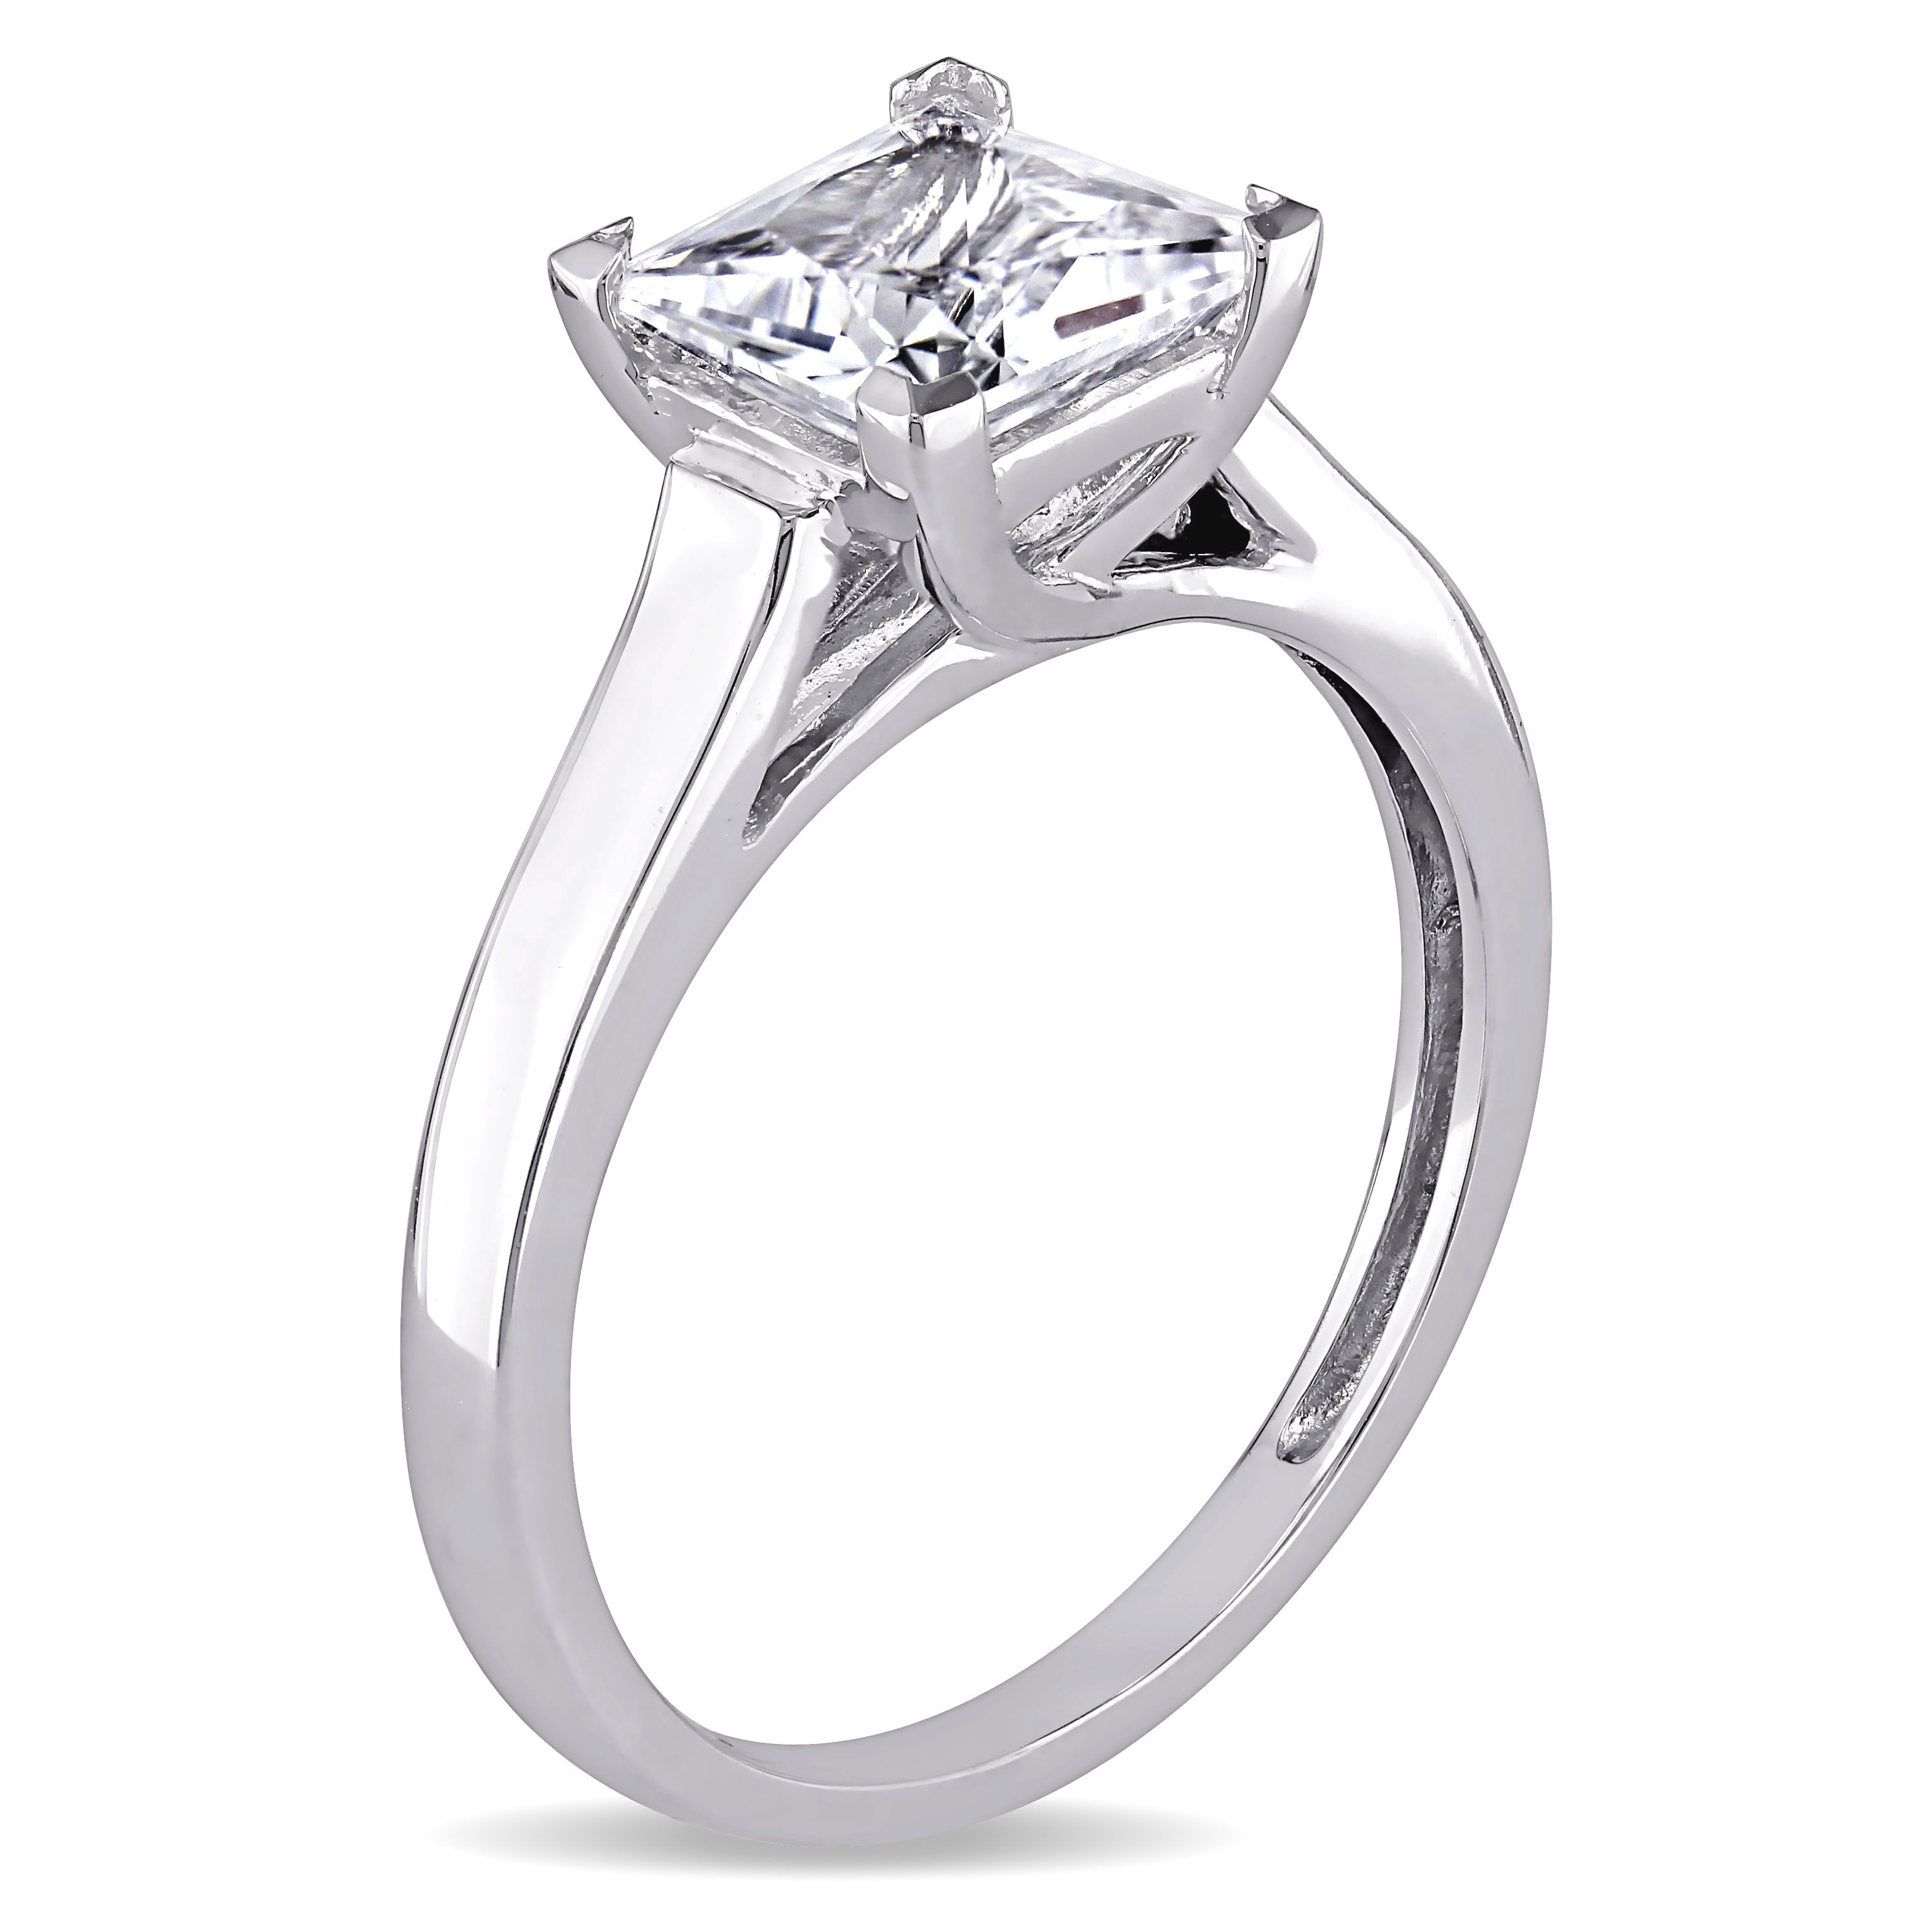 jewellery crl ideal trilogy engagement diamond rings ring bridal lugaro square cut